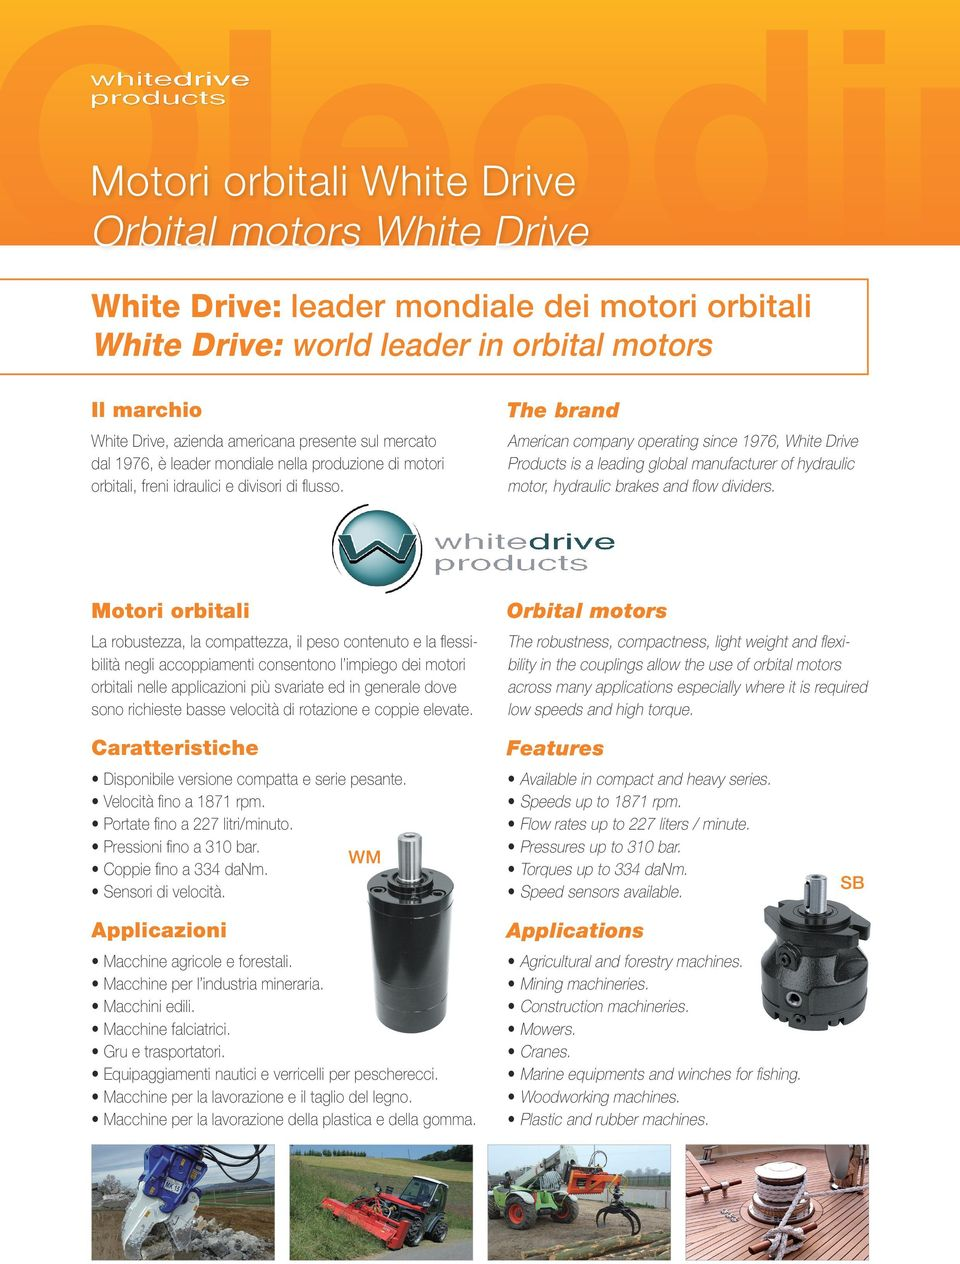 American company operating since 1976, White Drive Products is a leading global manufacturer of hydraulic motor, hydraulic brakes and flow dividers.